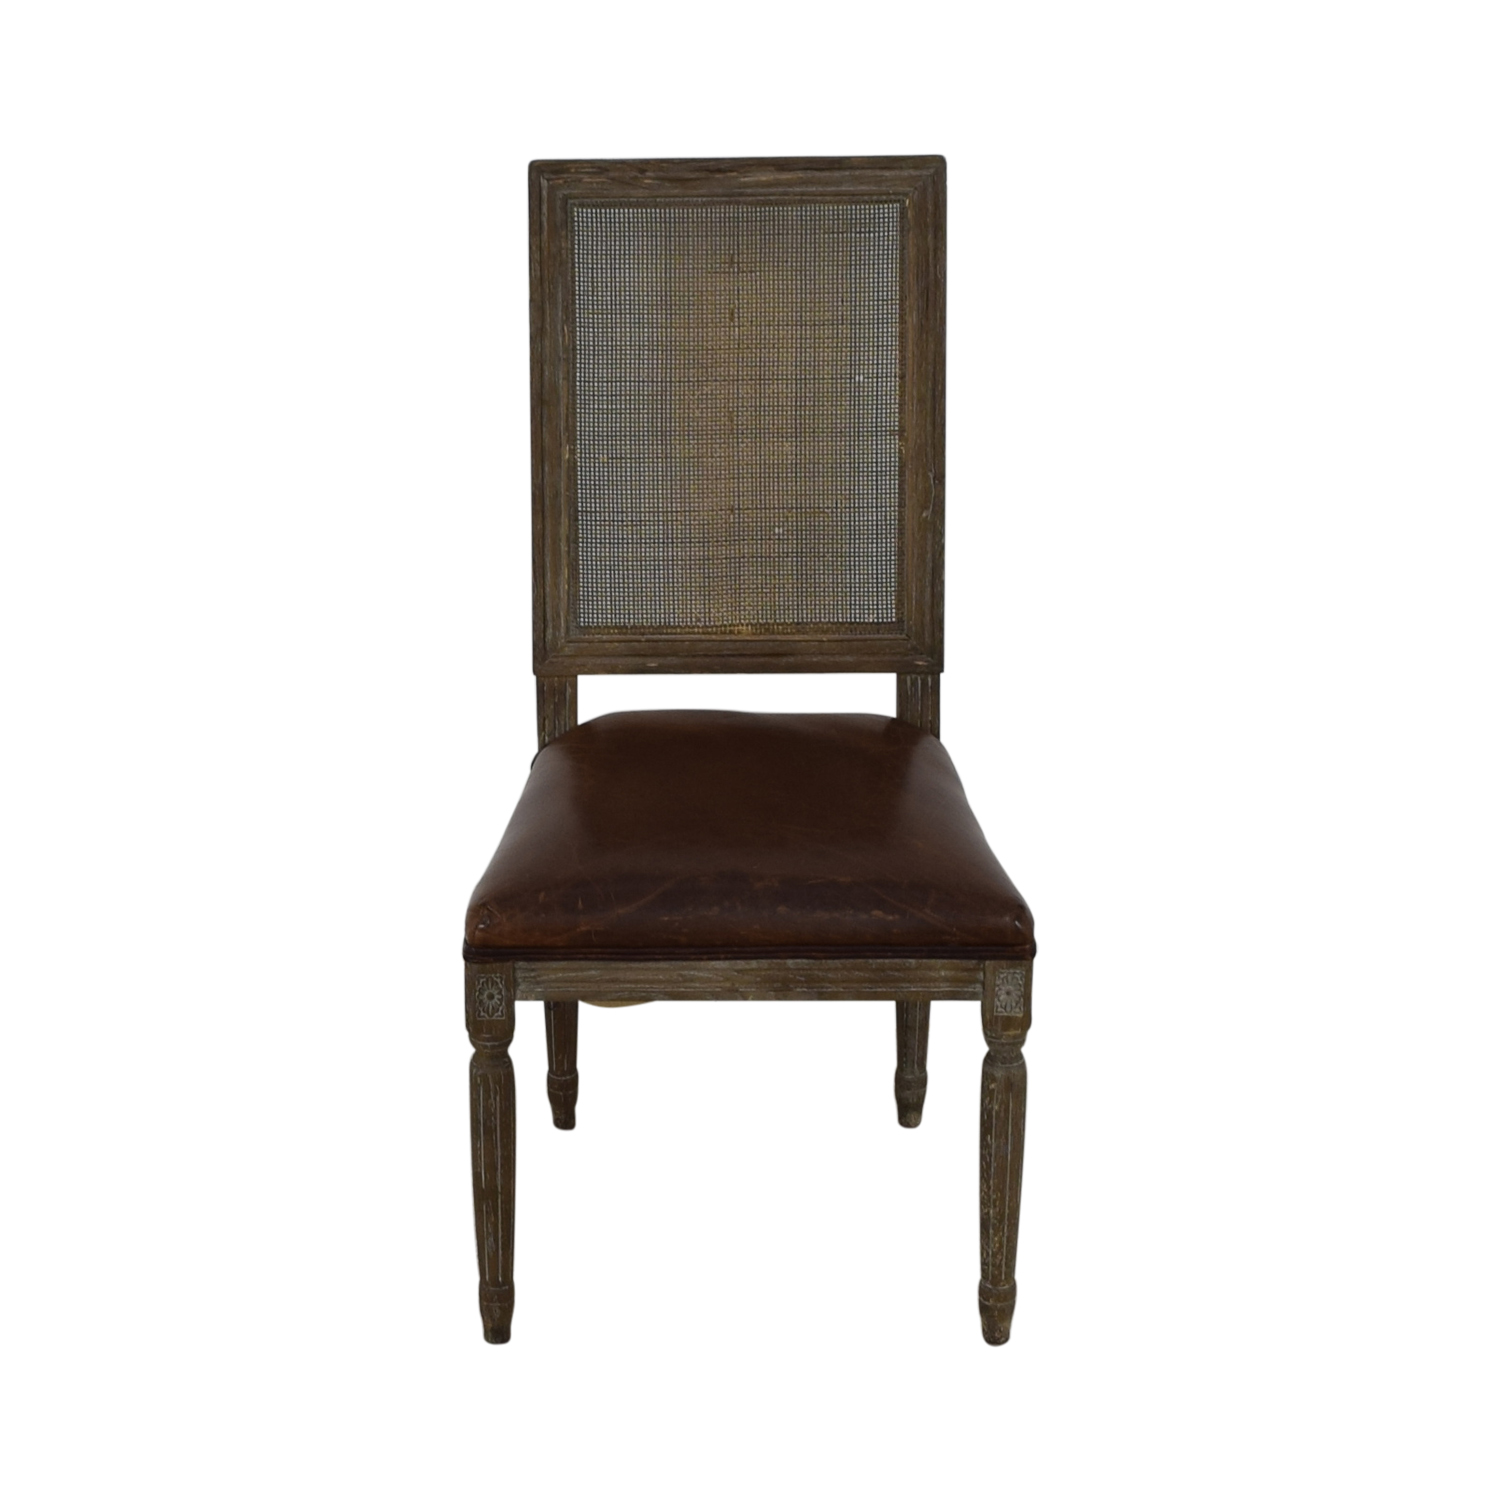 Restoration Hardware Restoration Hardware Vintage French Square Cane Back Leather Side Chair dimensions